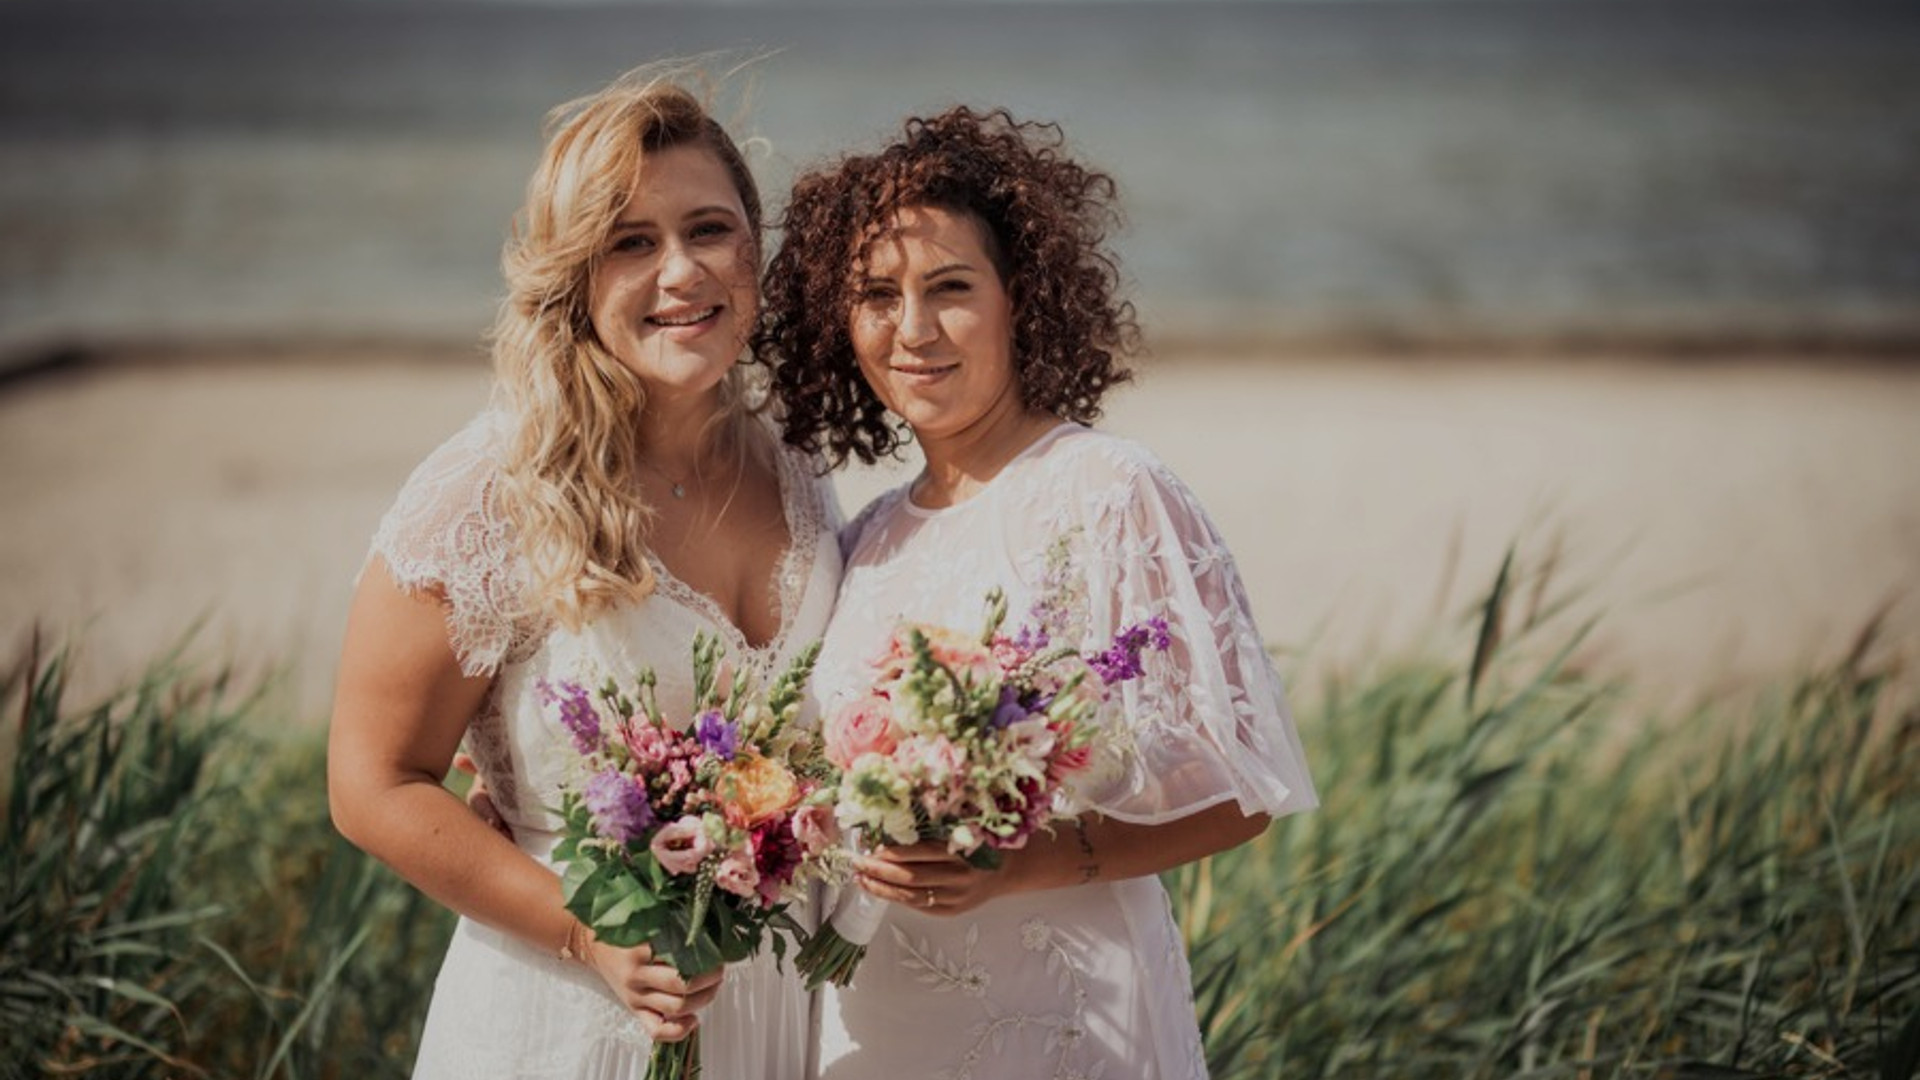 A video of a lesbian wedding in Denmark, a country where gay marriage is legal.